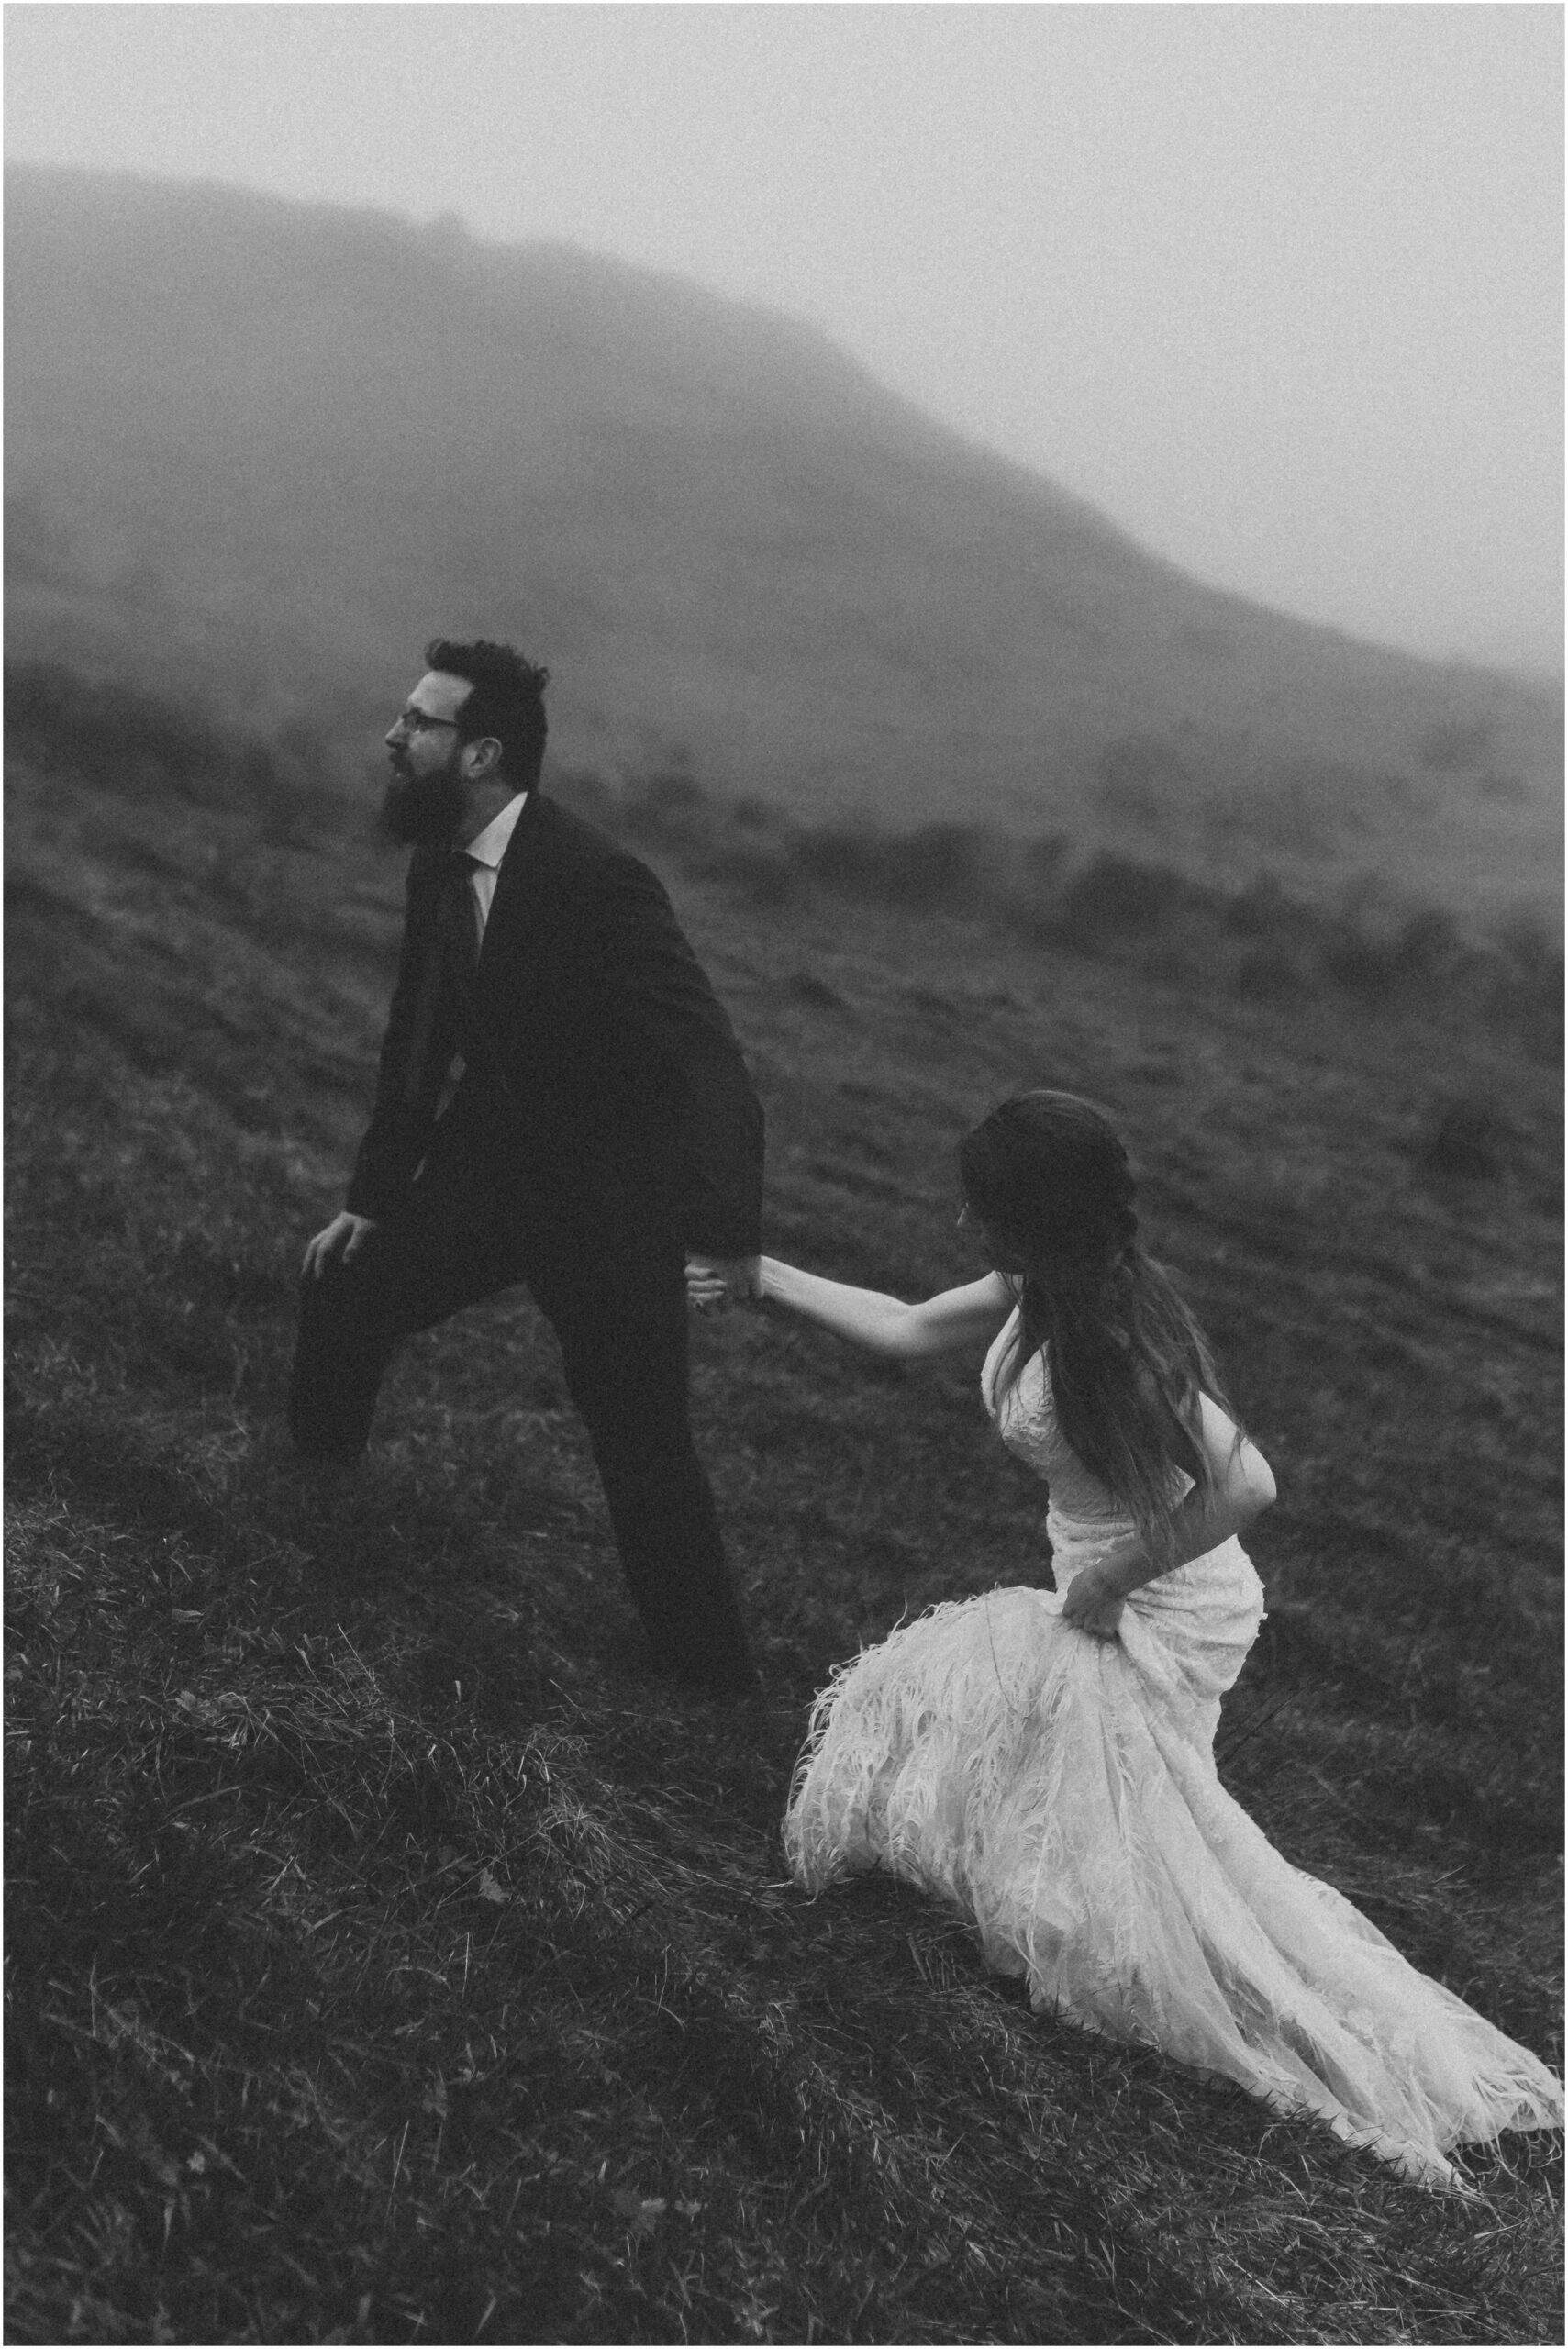 Dancing in the wind near the cliff of moher. This elopement was timeless and I will cherish having documented such a beautiful connection. These intimate elopement photos embrace the weather of Ireland and show the spirit of elopements.